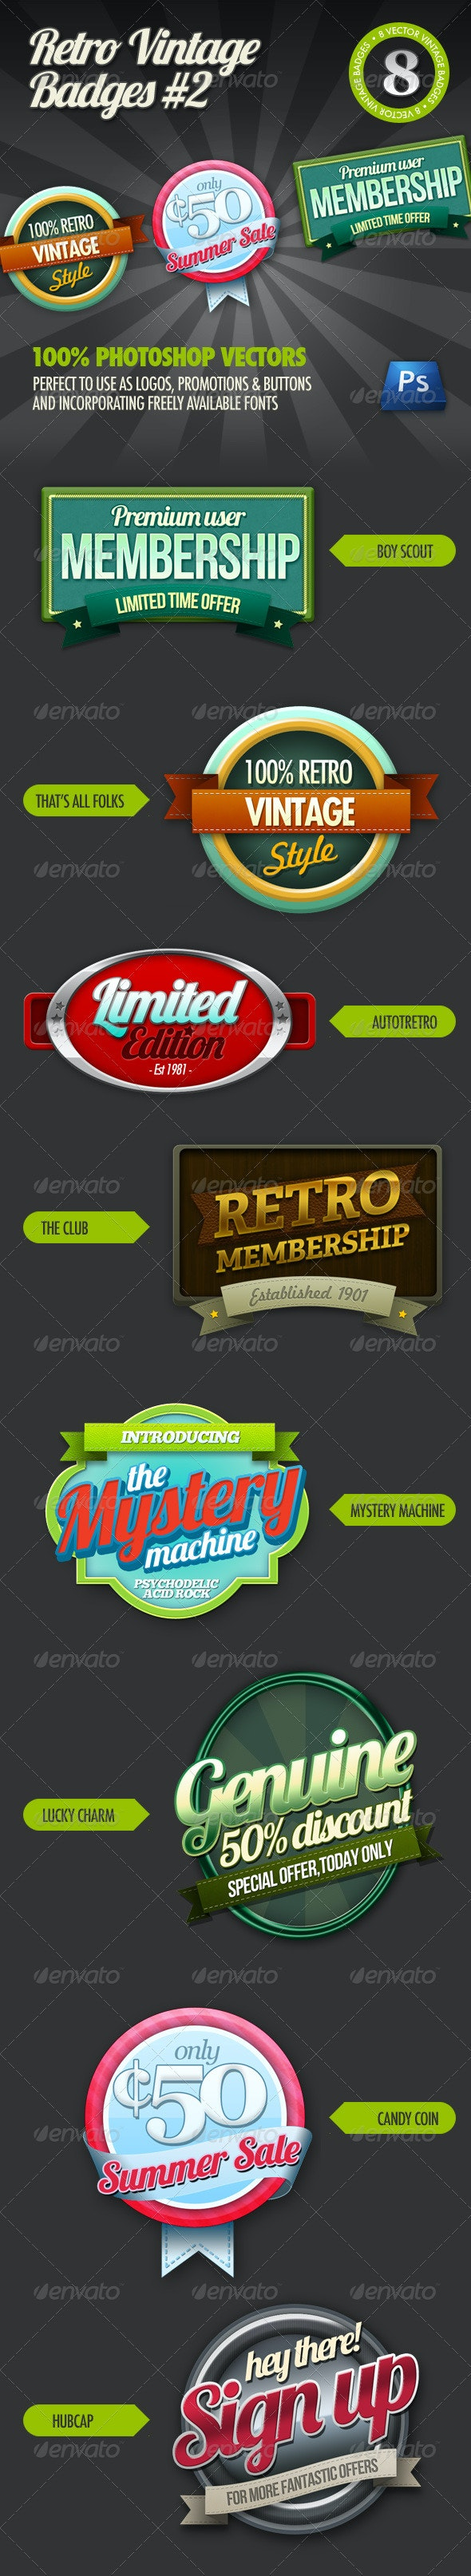 8 Retro Vintage badges #2 - Badges & Stickers Web Elements